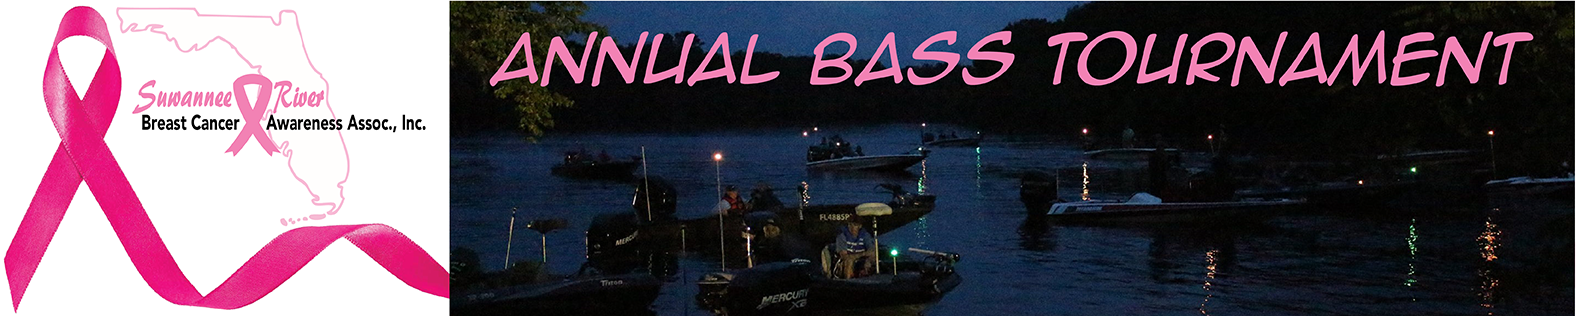 Bass Tournament Photos Header